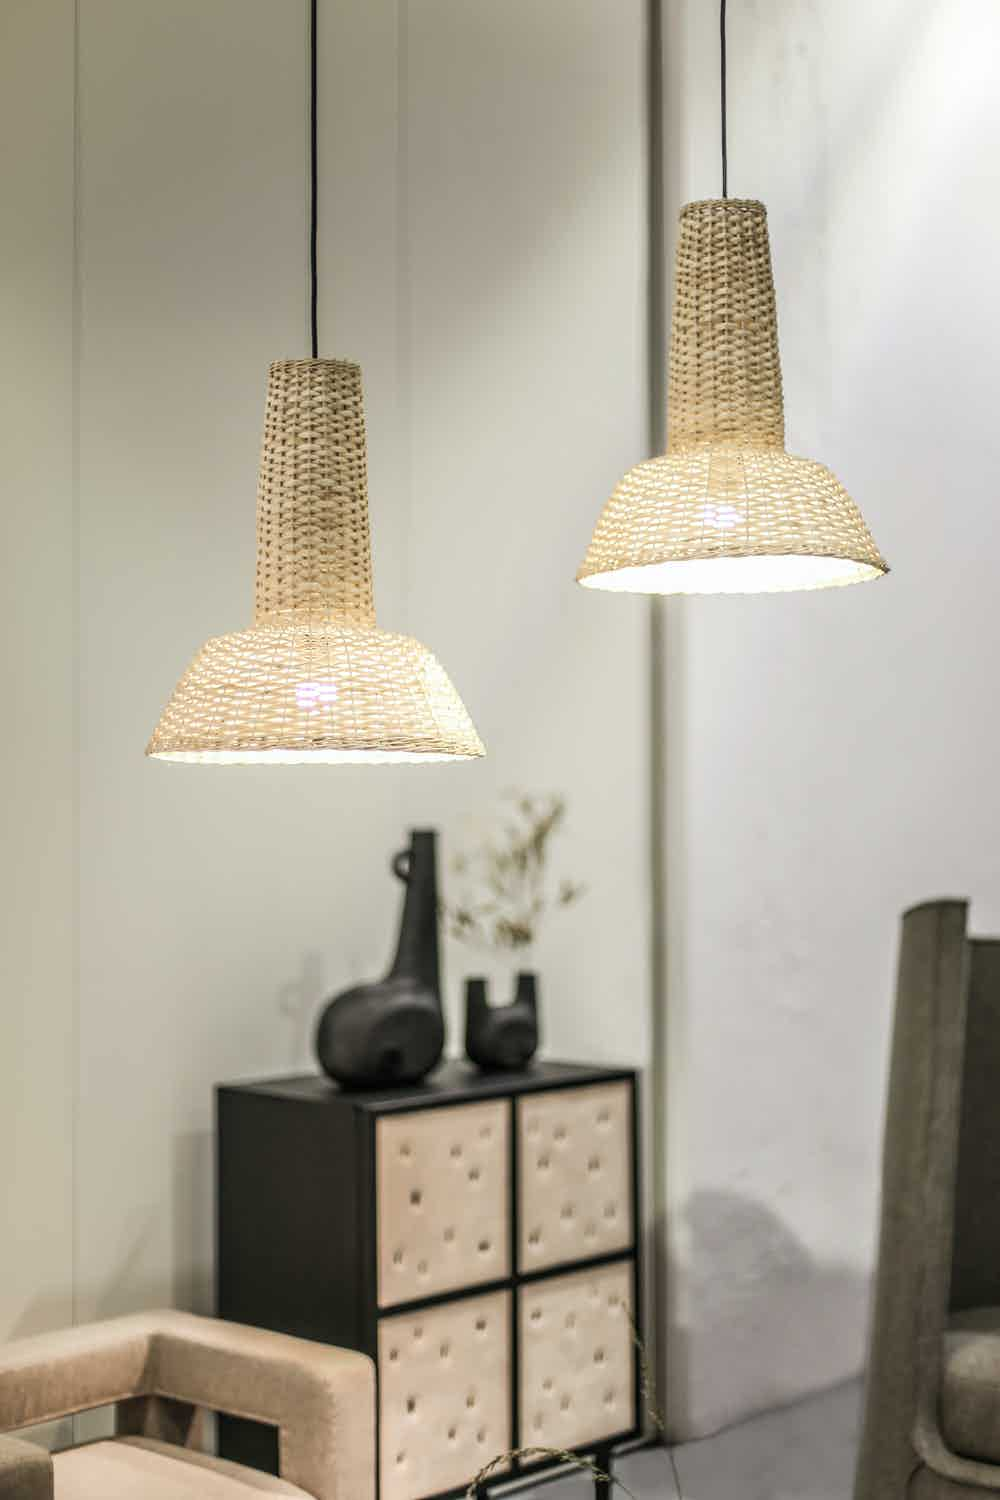 Faina design strikha set pendant lamps lit insitu haute living